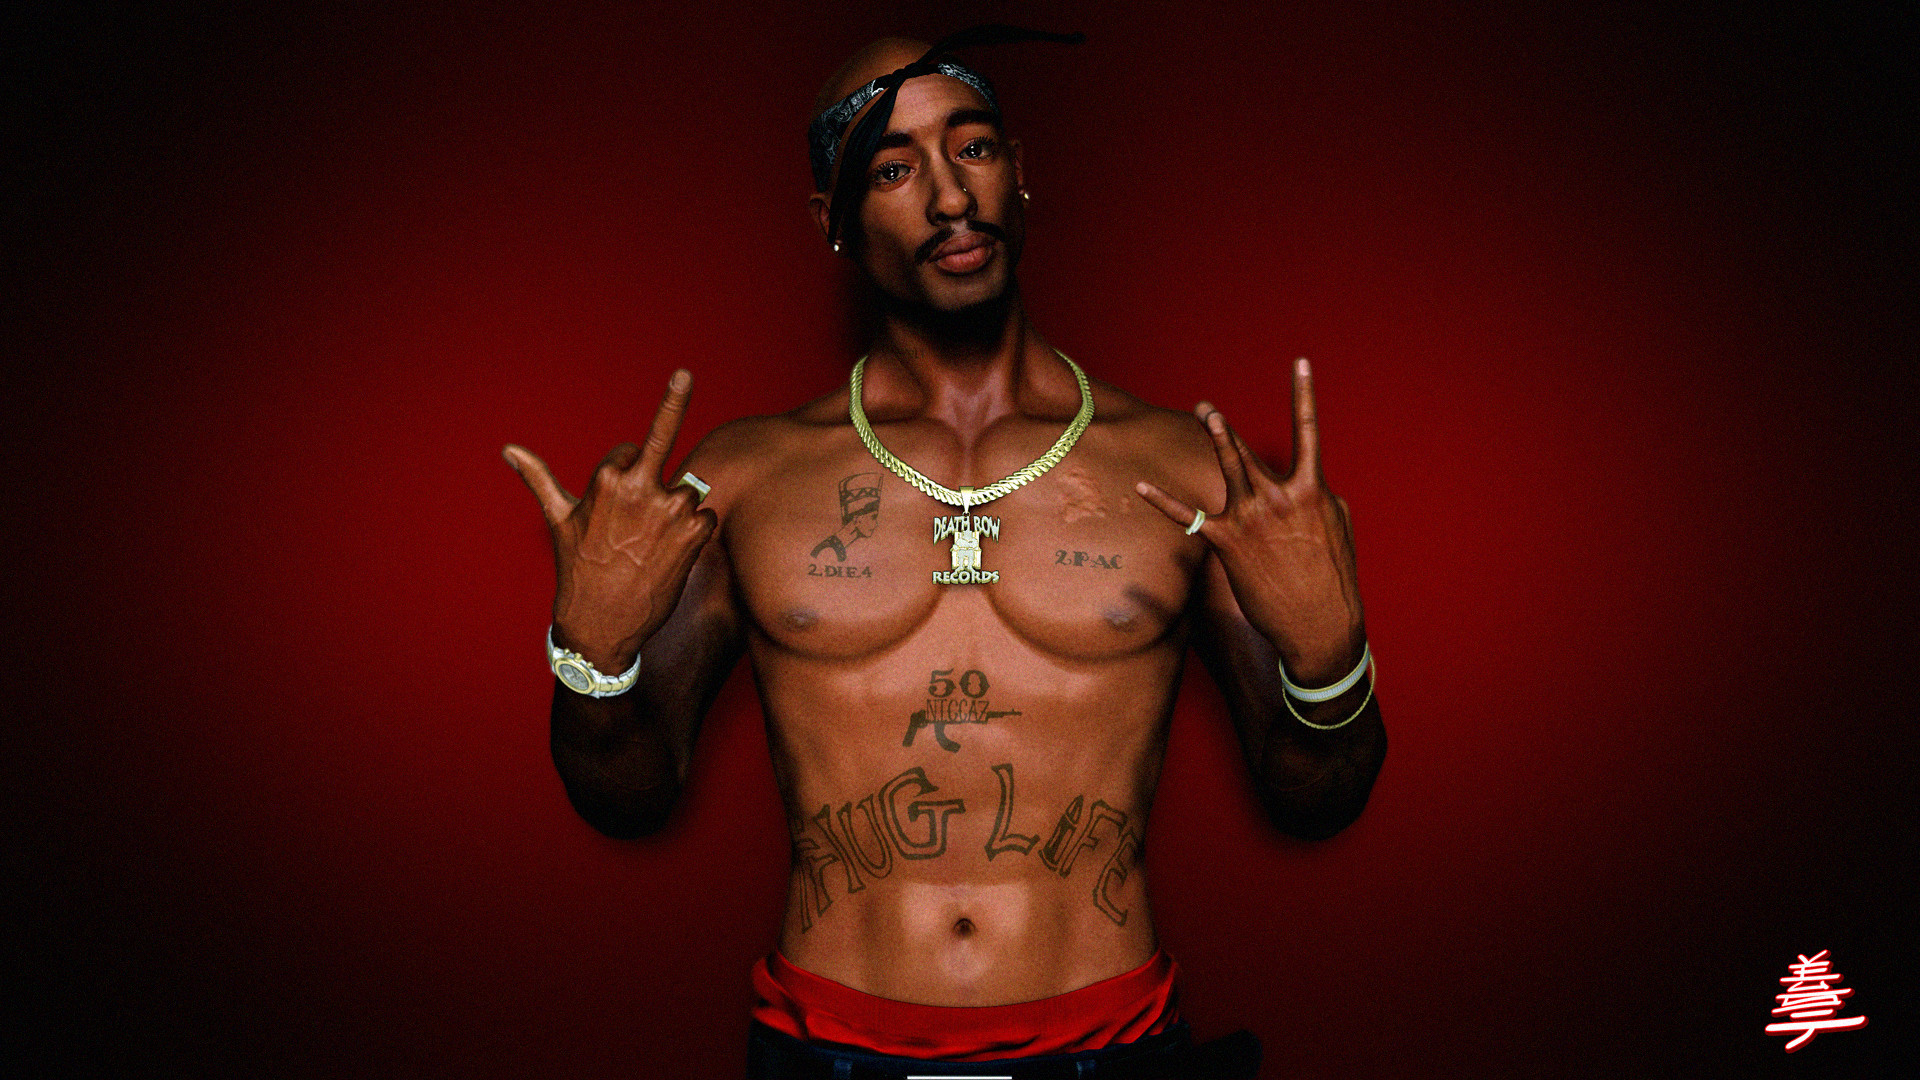 2048x2048 2048x2048 Wallpaper tupac, 2pac, rapper. Download